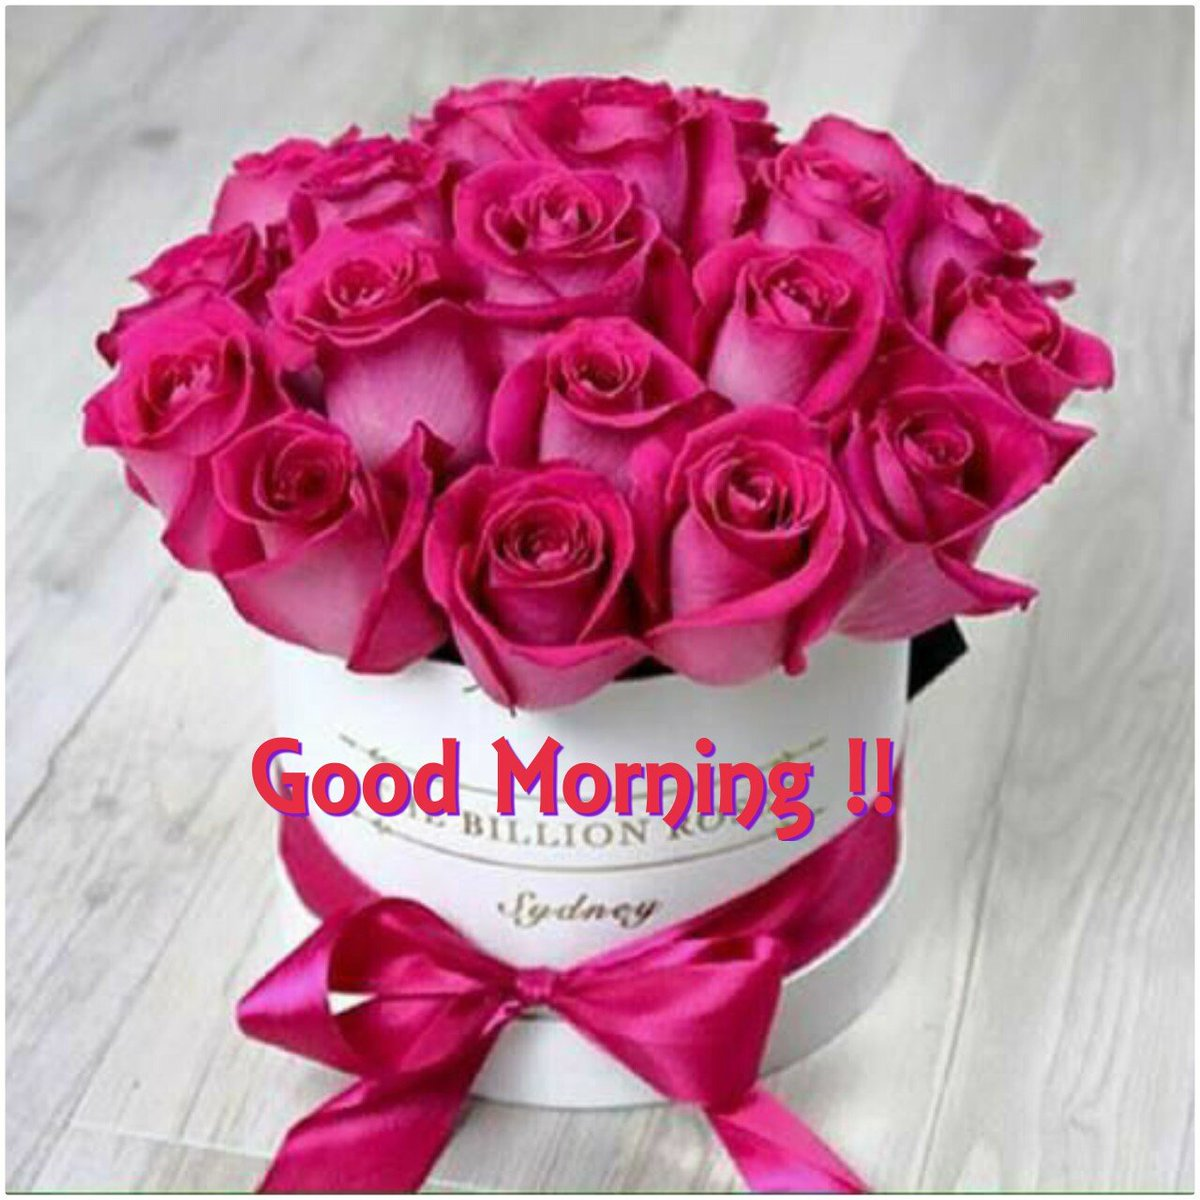 rani gill on twitter goodmorning morning flowers new day new